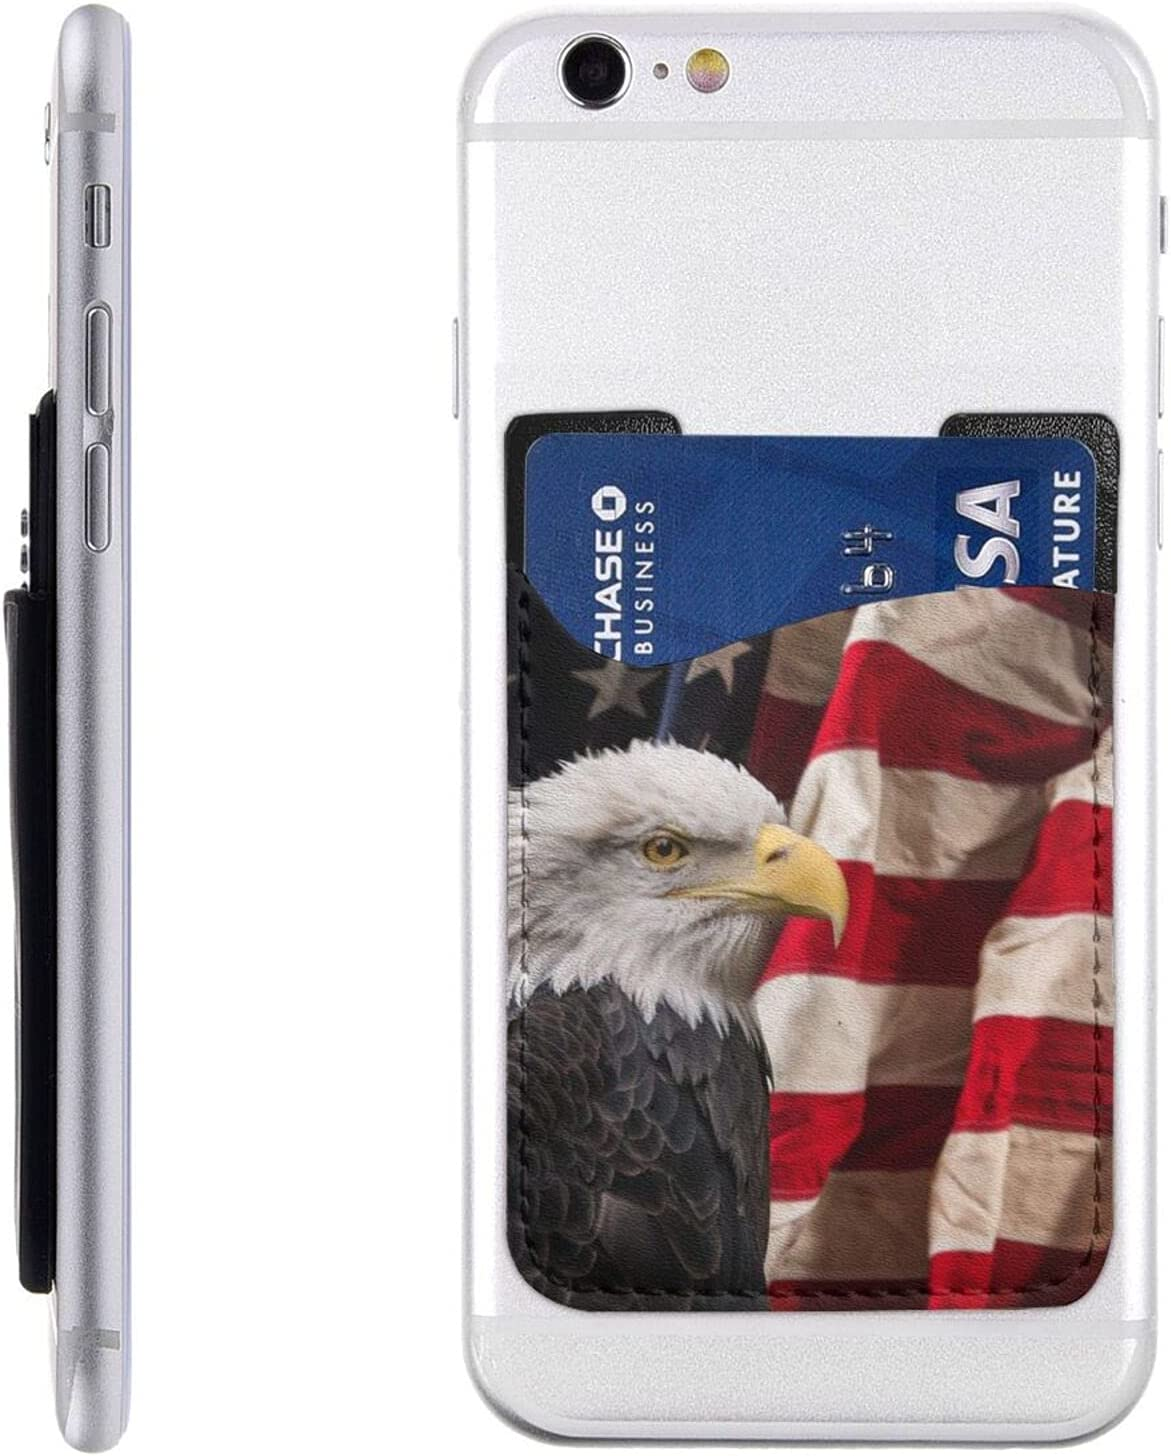 American Eagle Flag Phone Card Holder,Cool Pu Leather Credit Card Wallet Phone Case Pouch Sleeve Pocket for All Smartphones